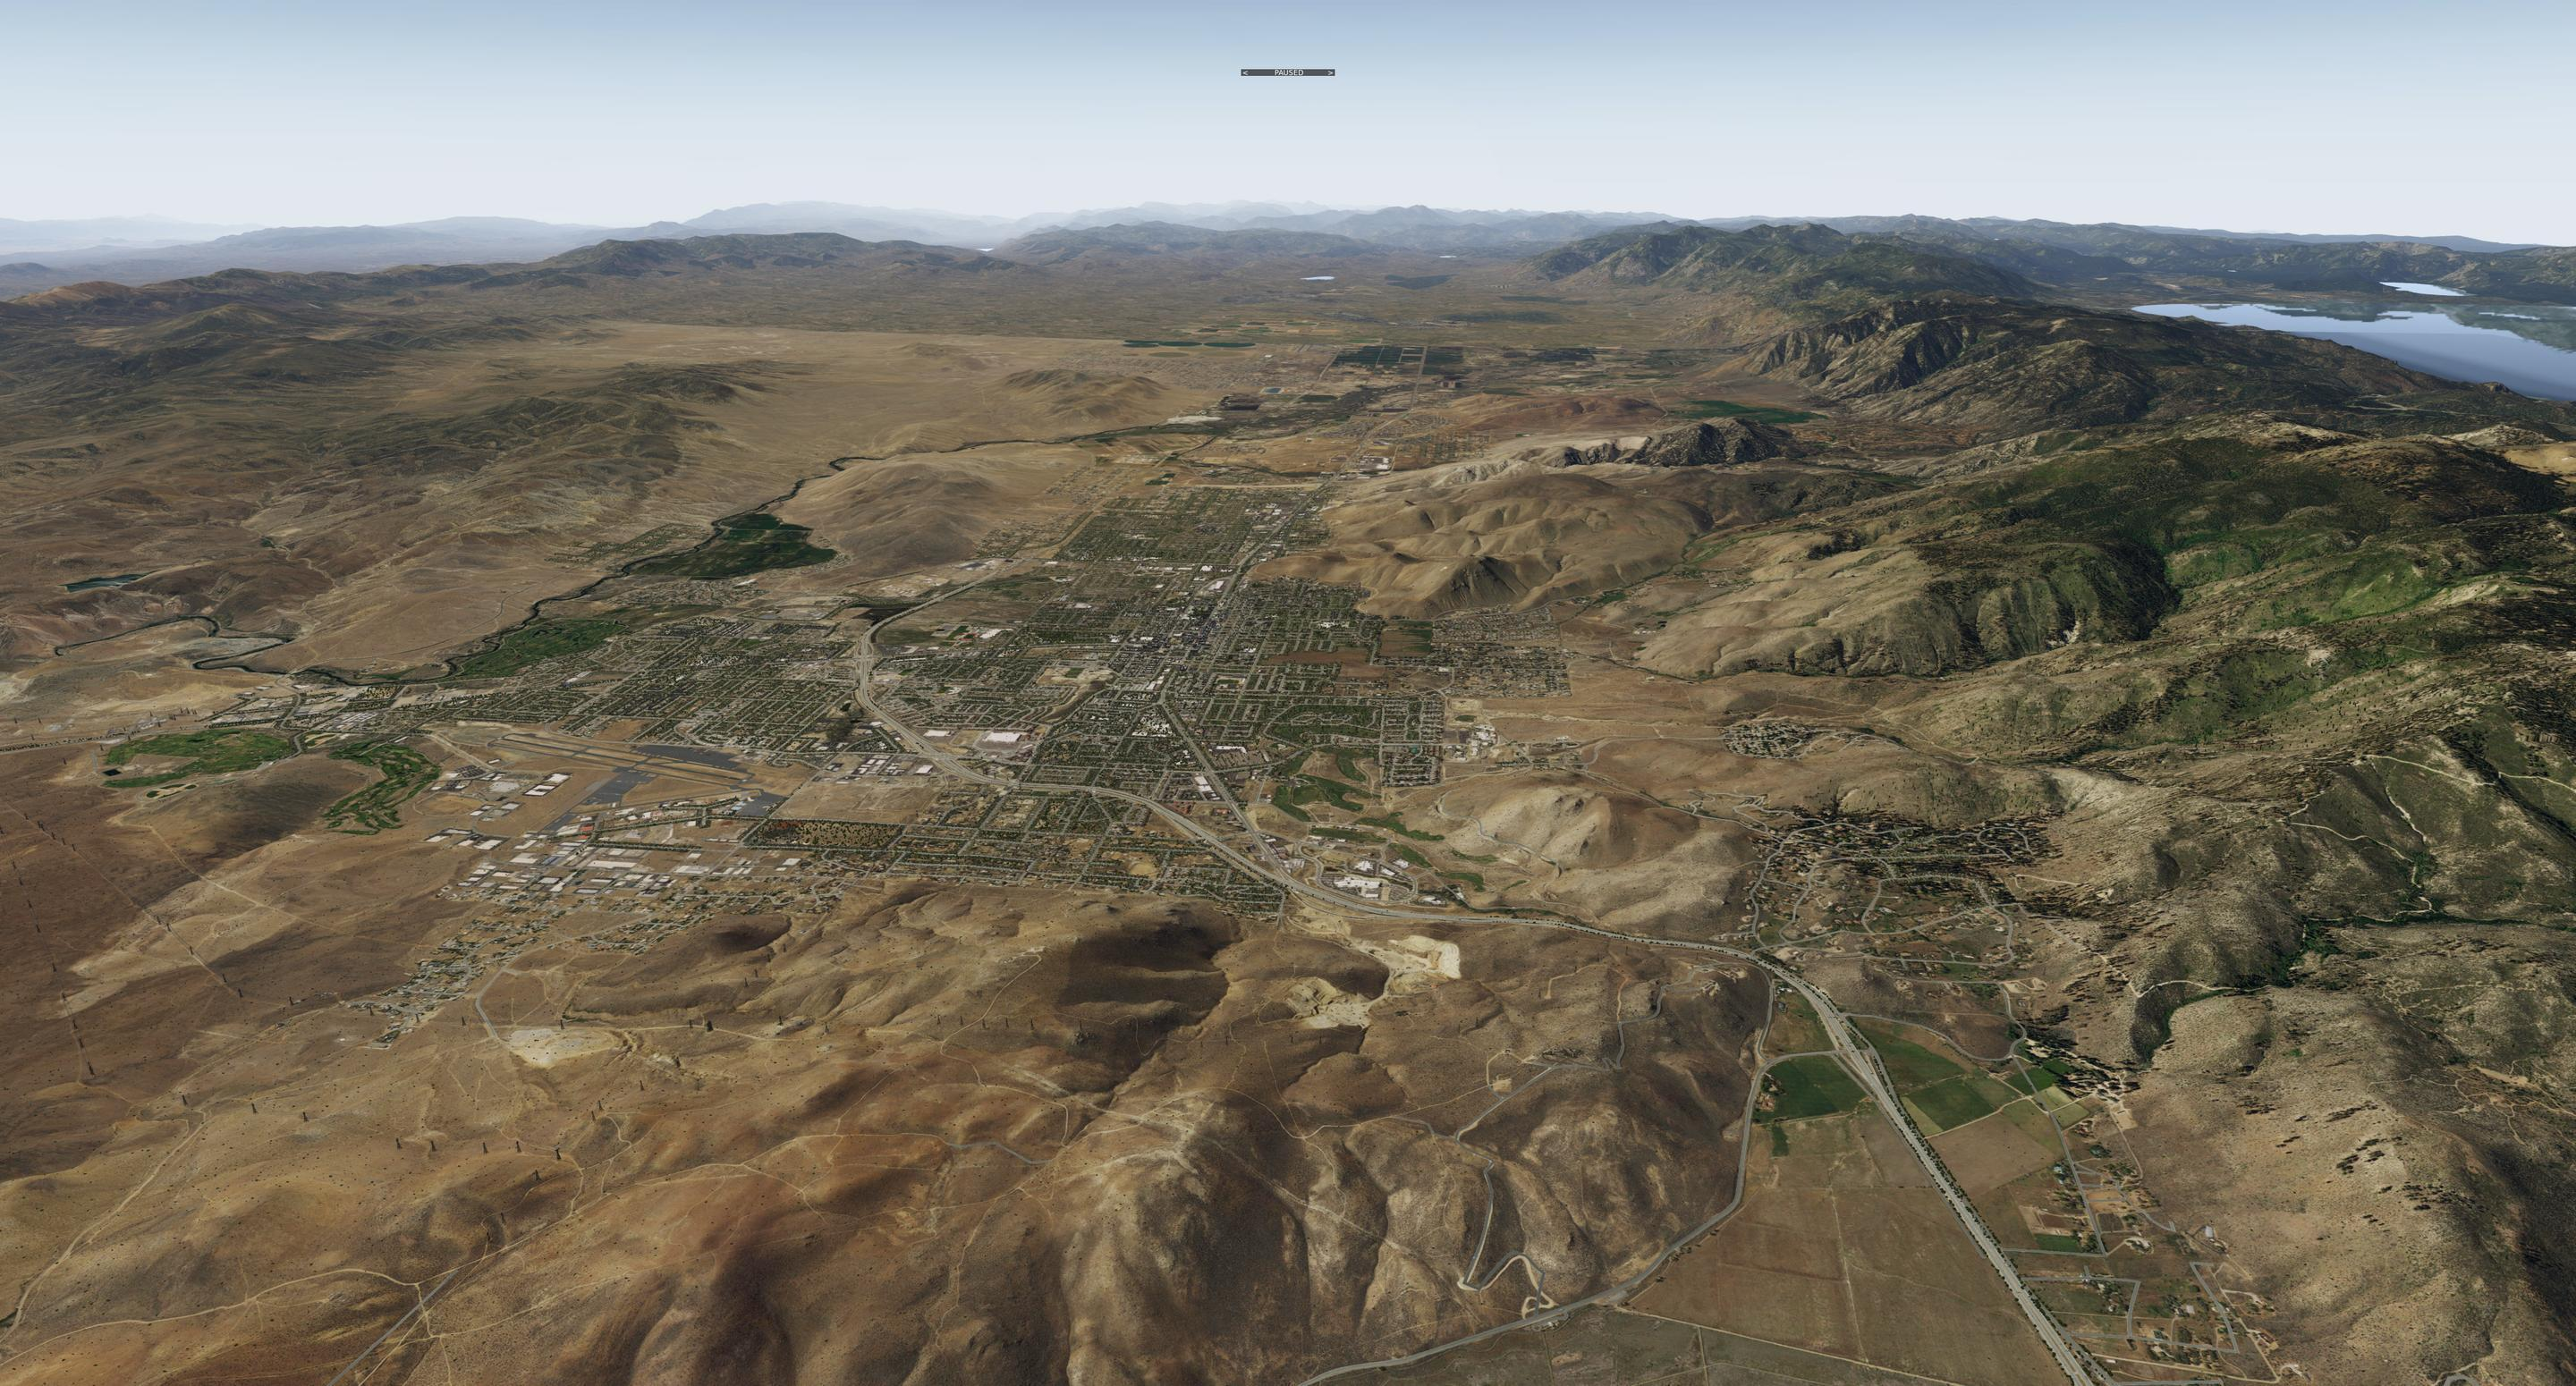 US Orthophotos - Page 4 - Scenery Packages (v11,v 10, v9) - X-Plane